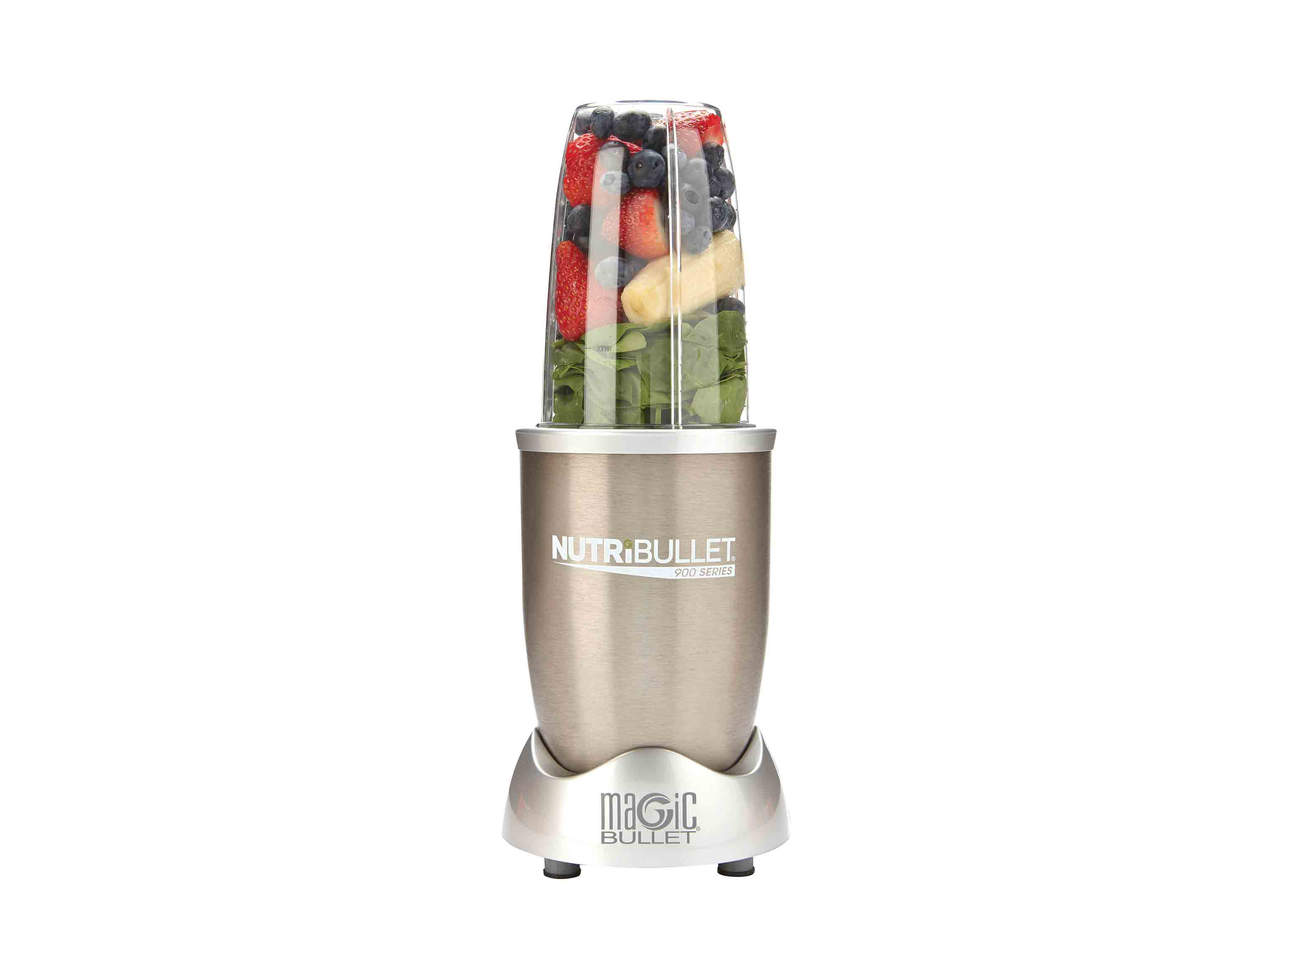 NutriBullet Is Being Sued After 22 People Claim Injuries from the Blender